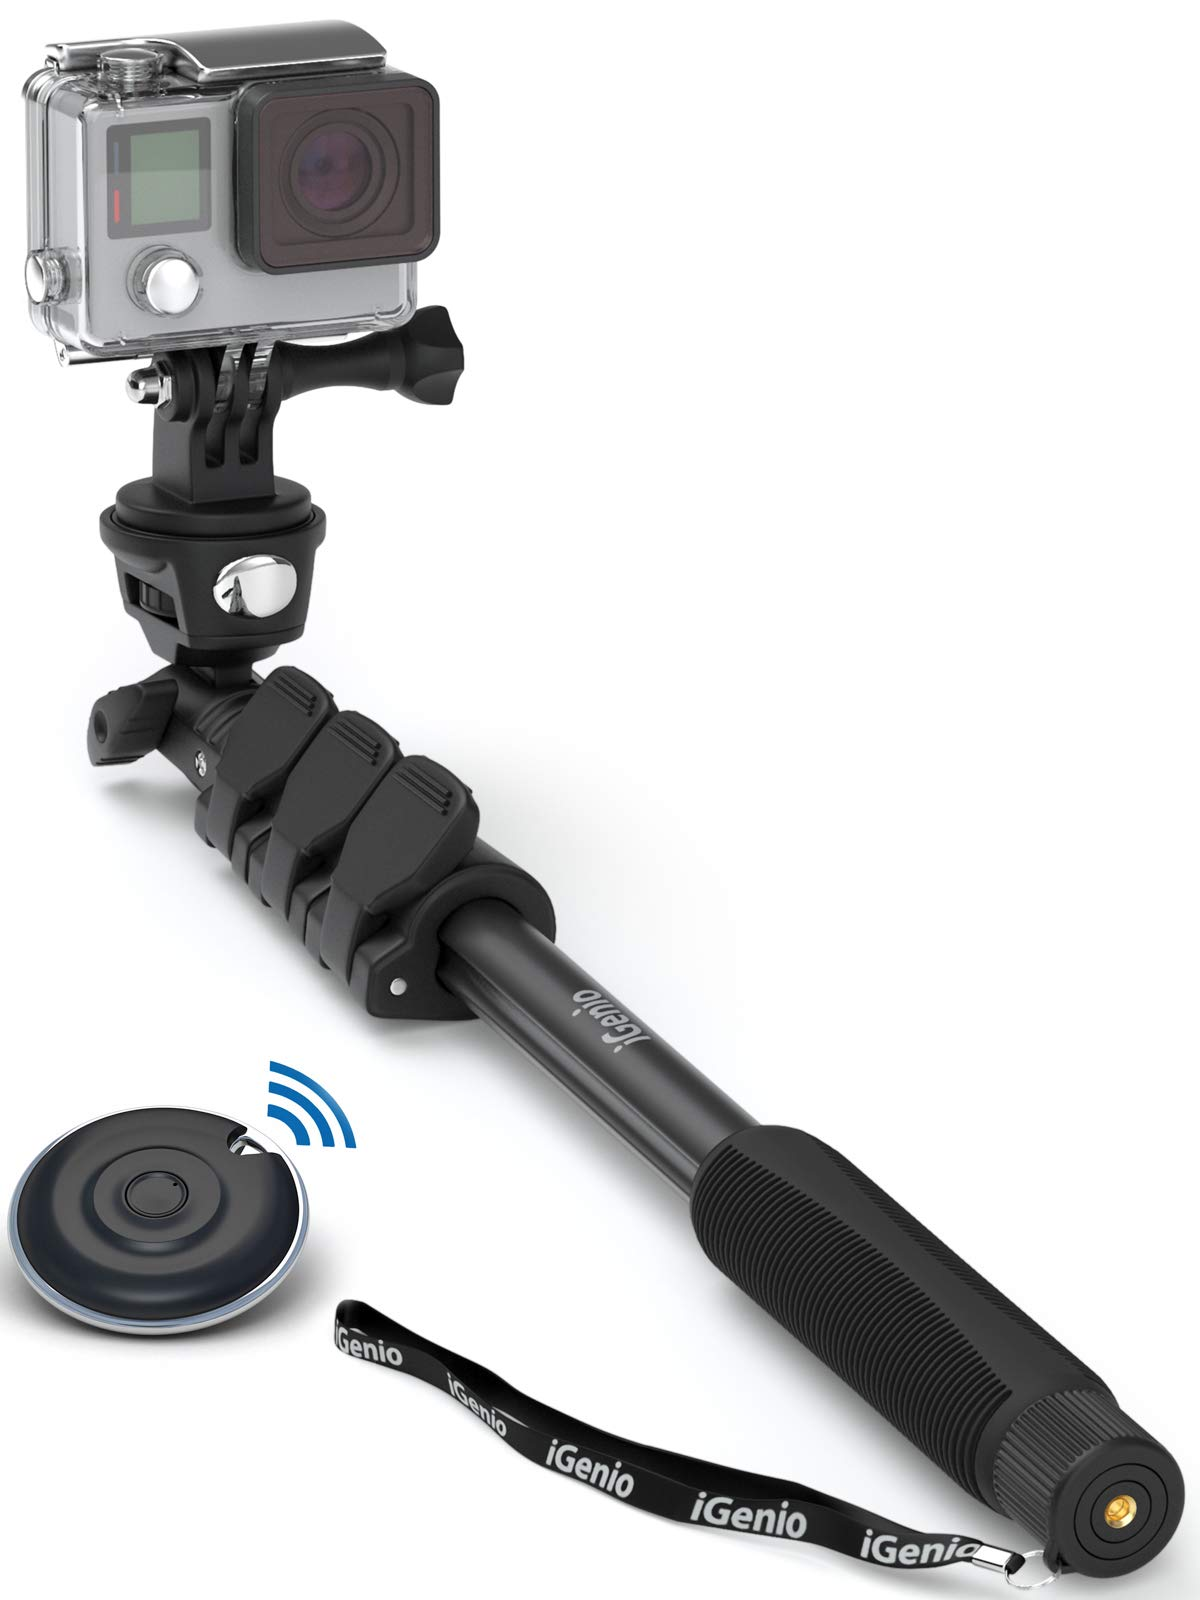 Professional 10-in-1 Monopod Selfie Stick for All GoPro Hero, Action Cameras, Cellphones, Digital Compacts with Bluetooth Remote Shutter - Extends 15''- 47'', Weatherproof Shockproof - Take It Anywhere by Selfie World (Image #1)